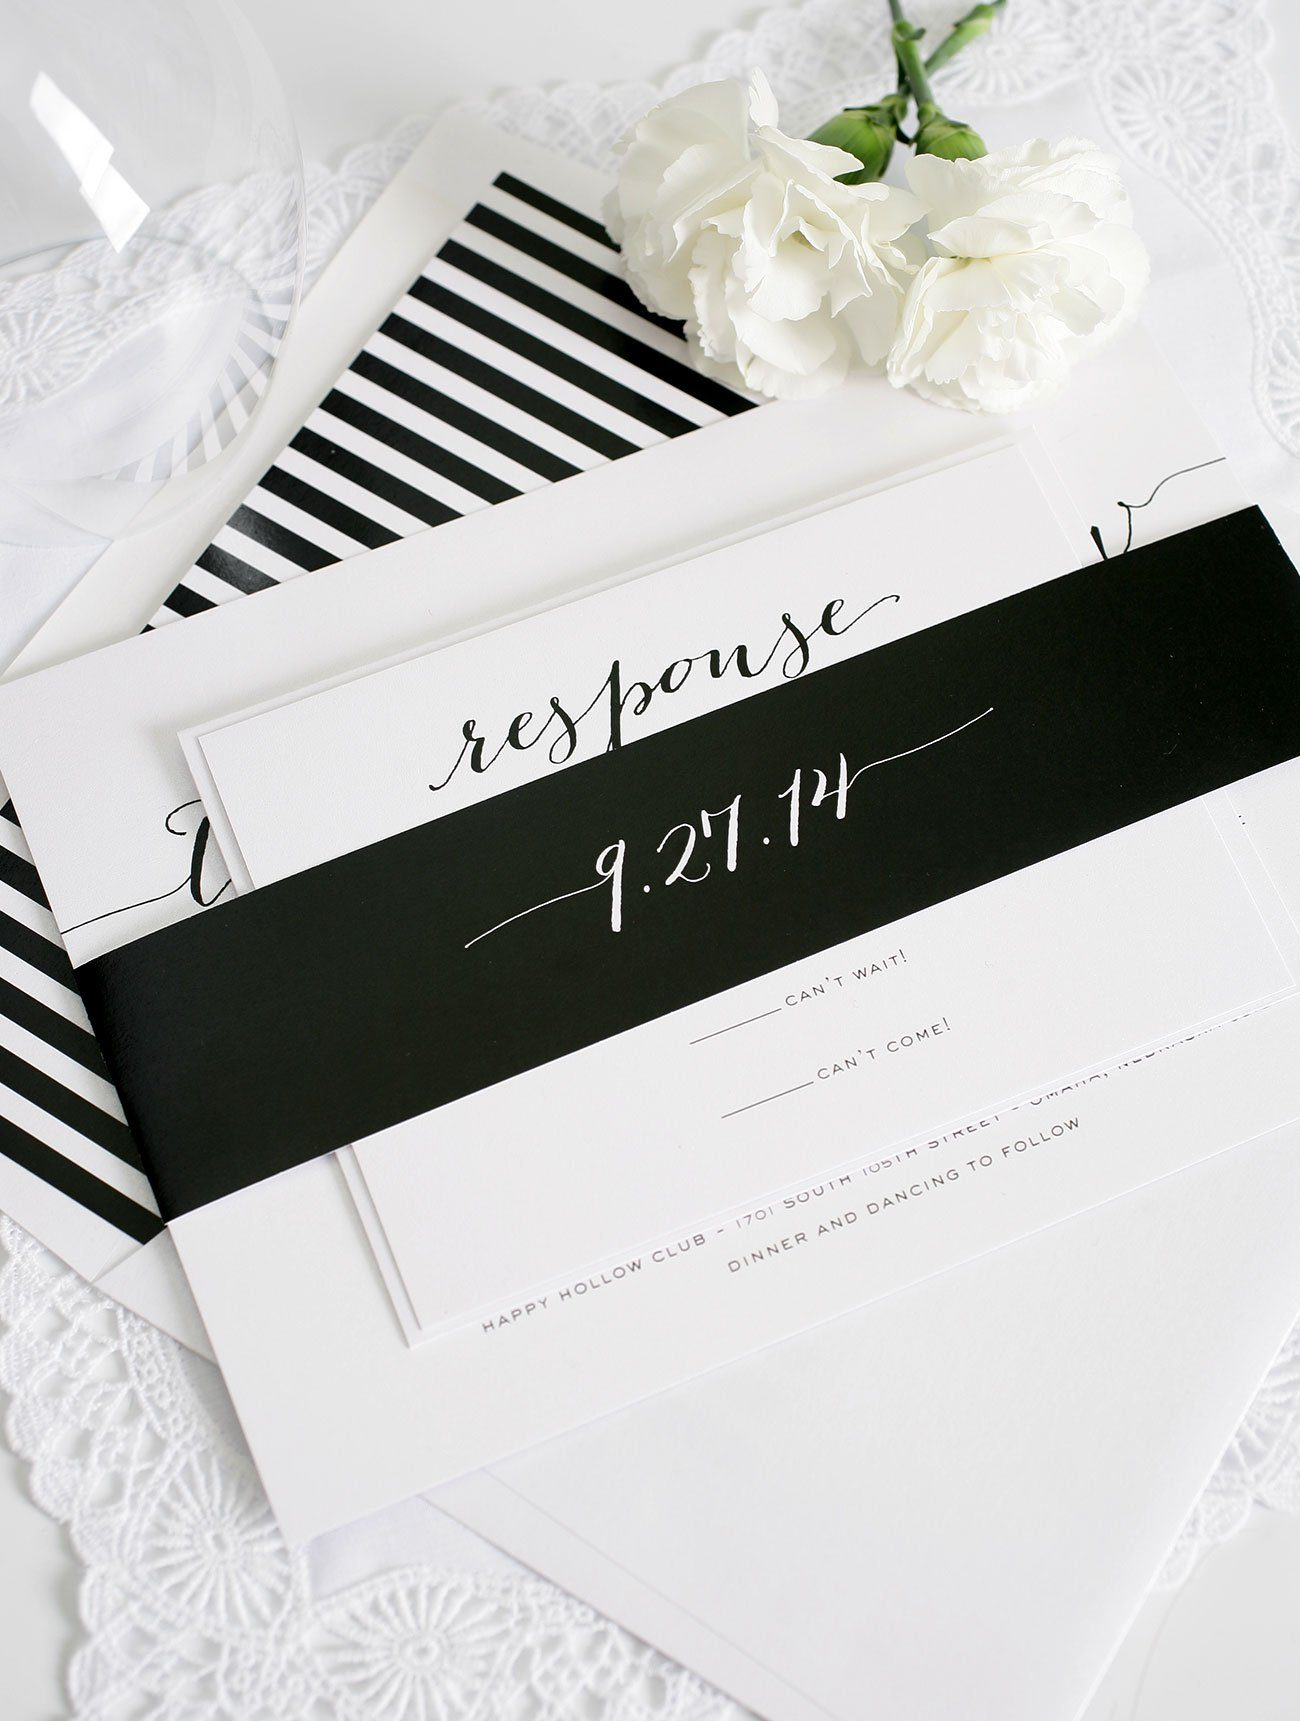 Black and white wedding invitations with flowing script